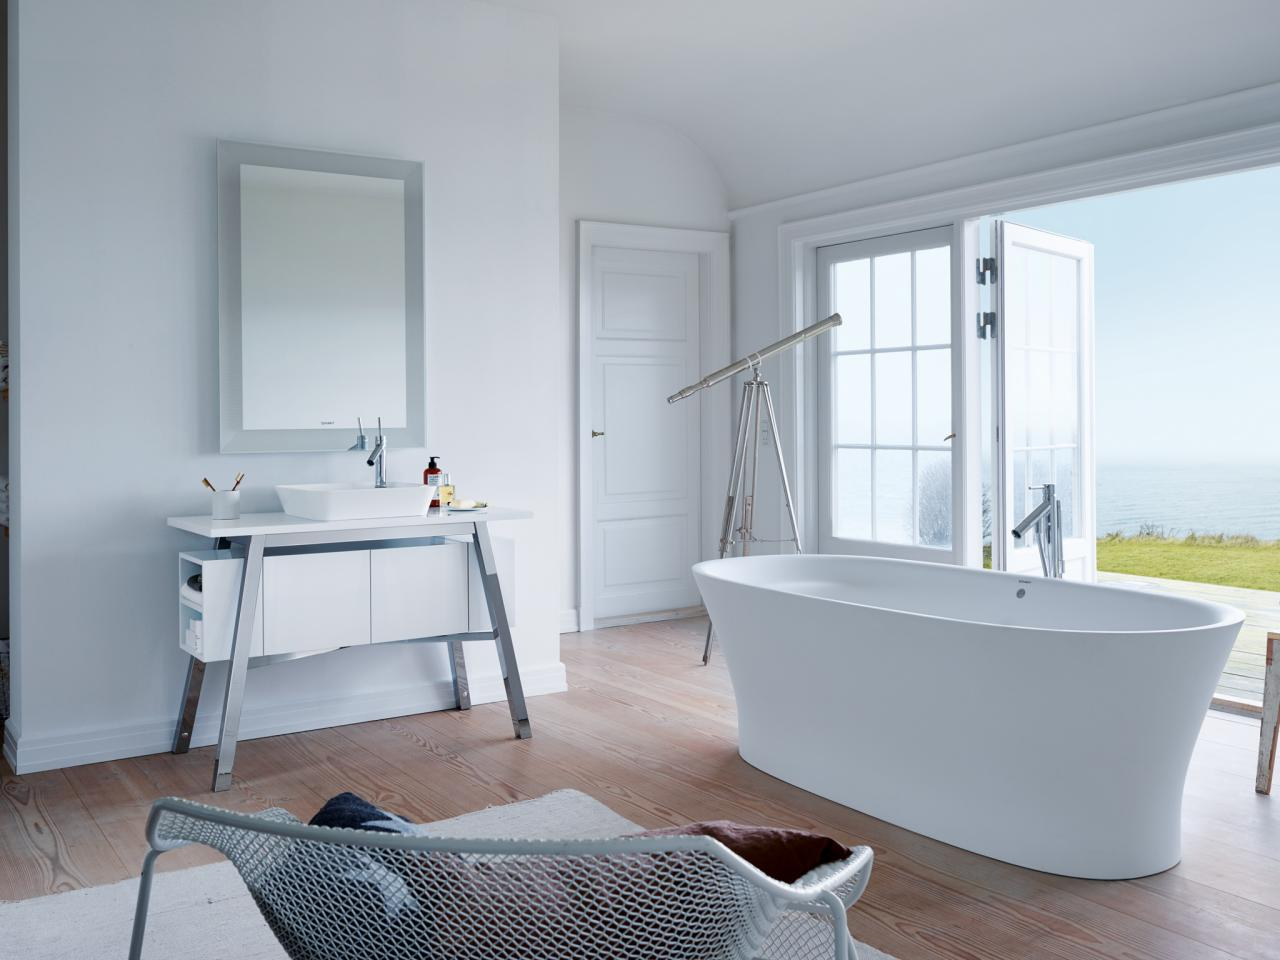 Decorative Driftwood For Homes Ideas Products For A Primp Perfect Bathroom Fifty Plus Life